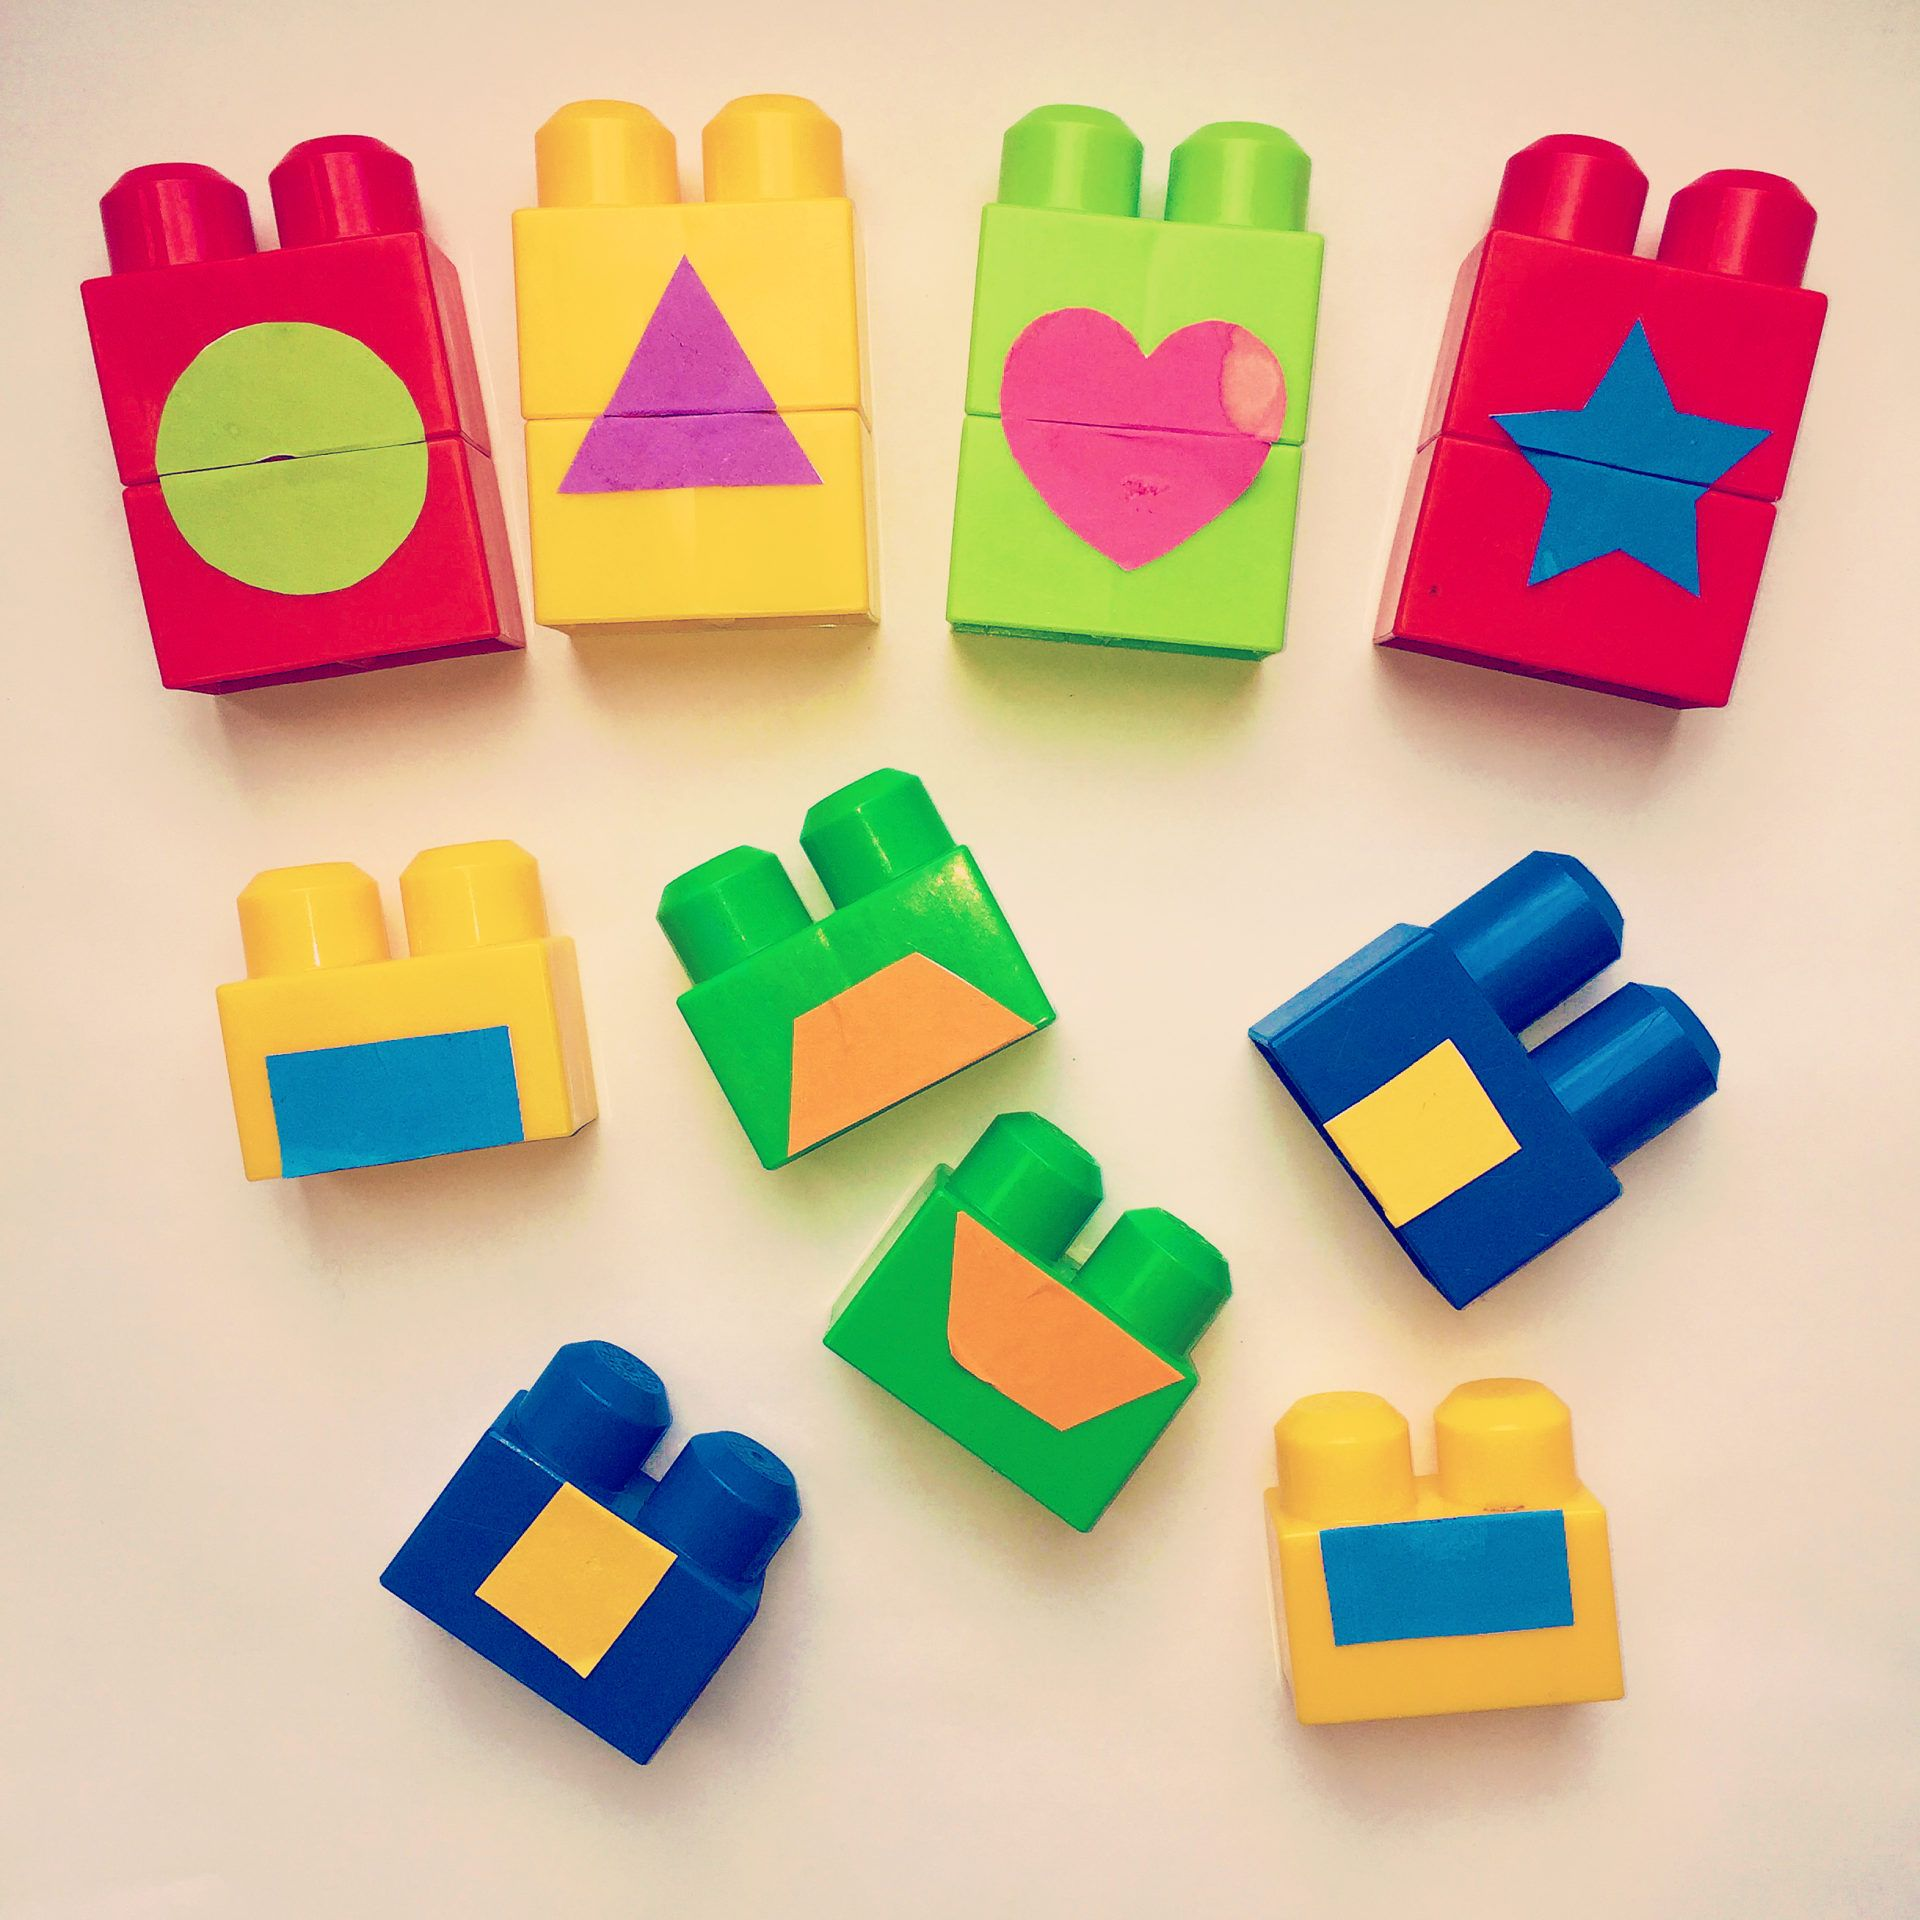 Shape Matching With Blocks